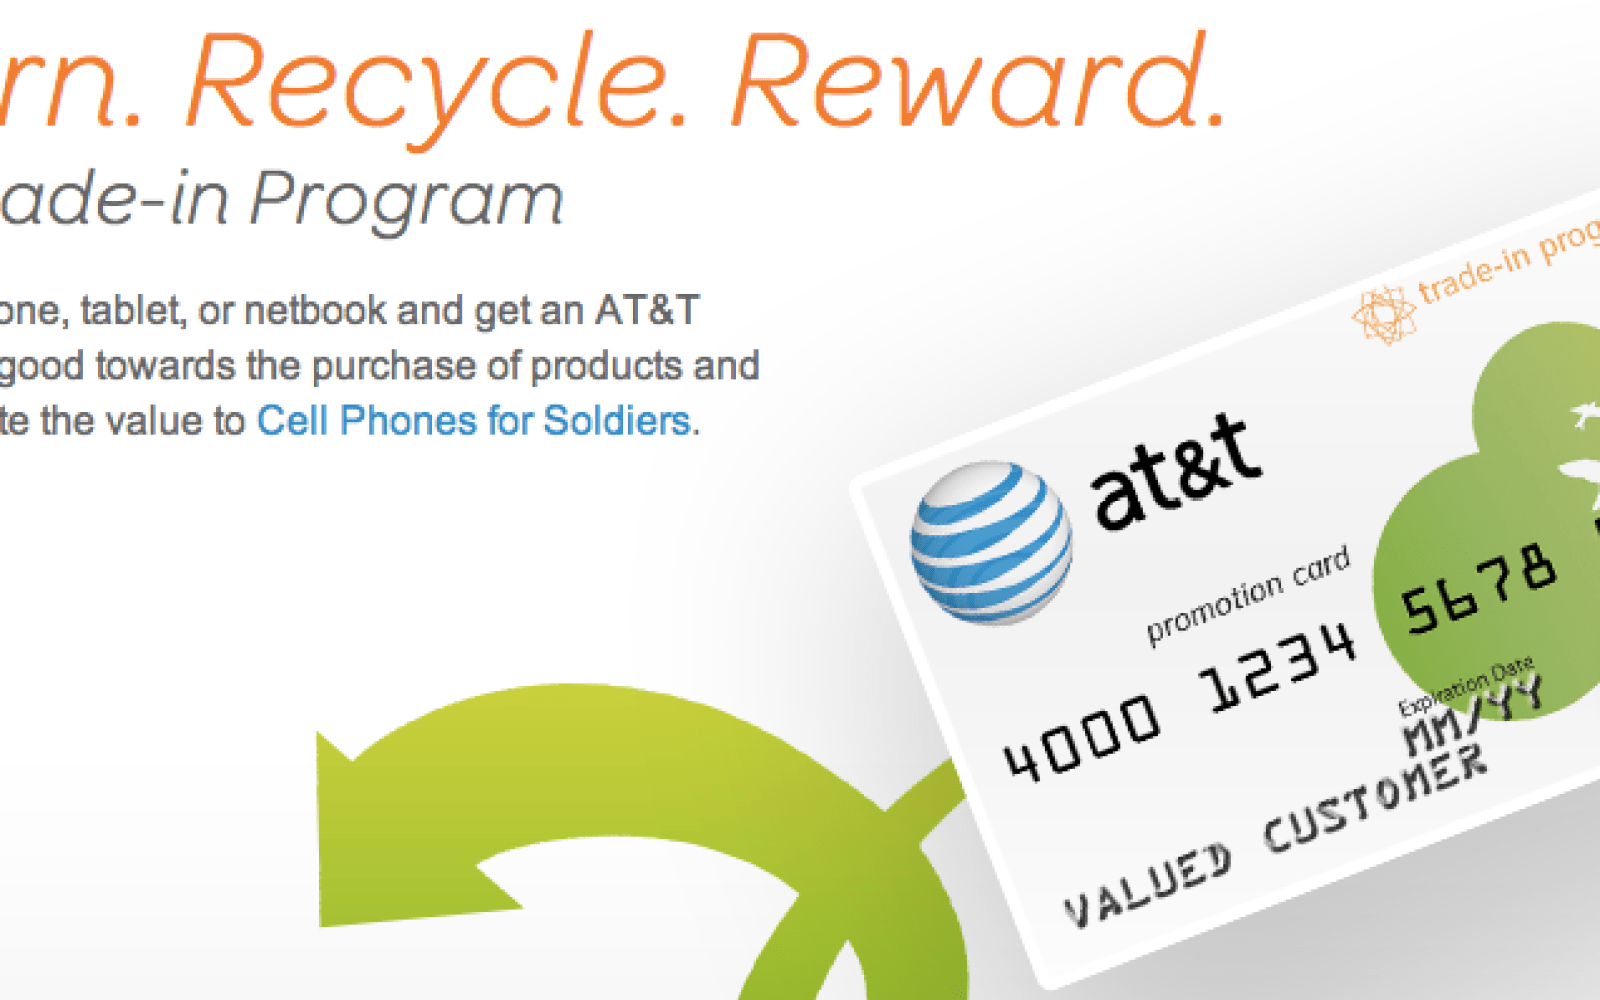 AT&T introduces new $100 phone trade-in program